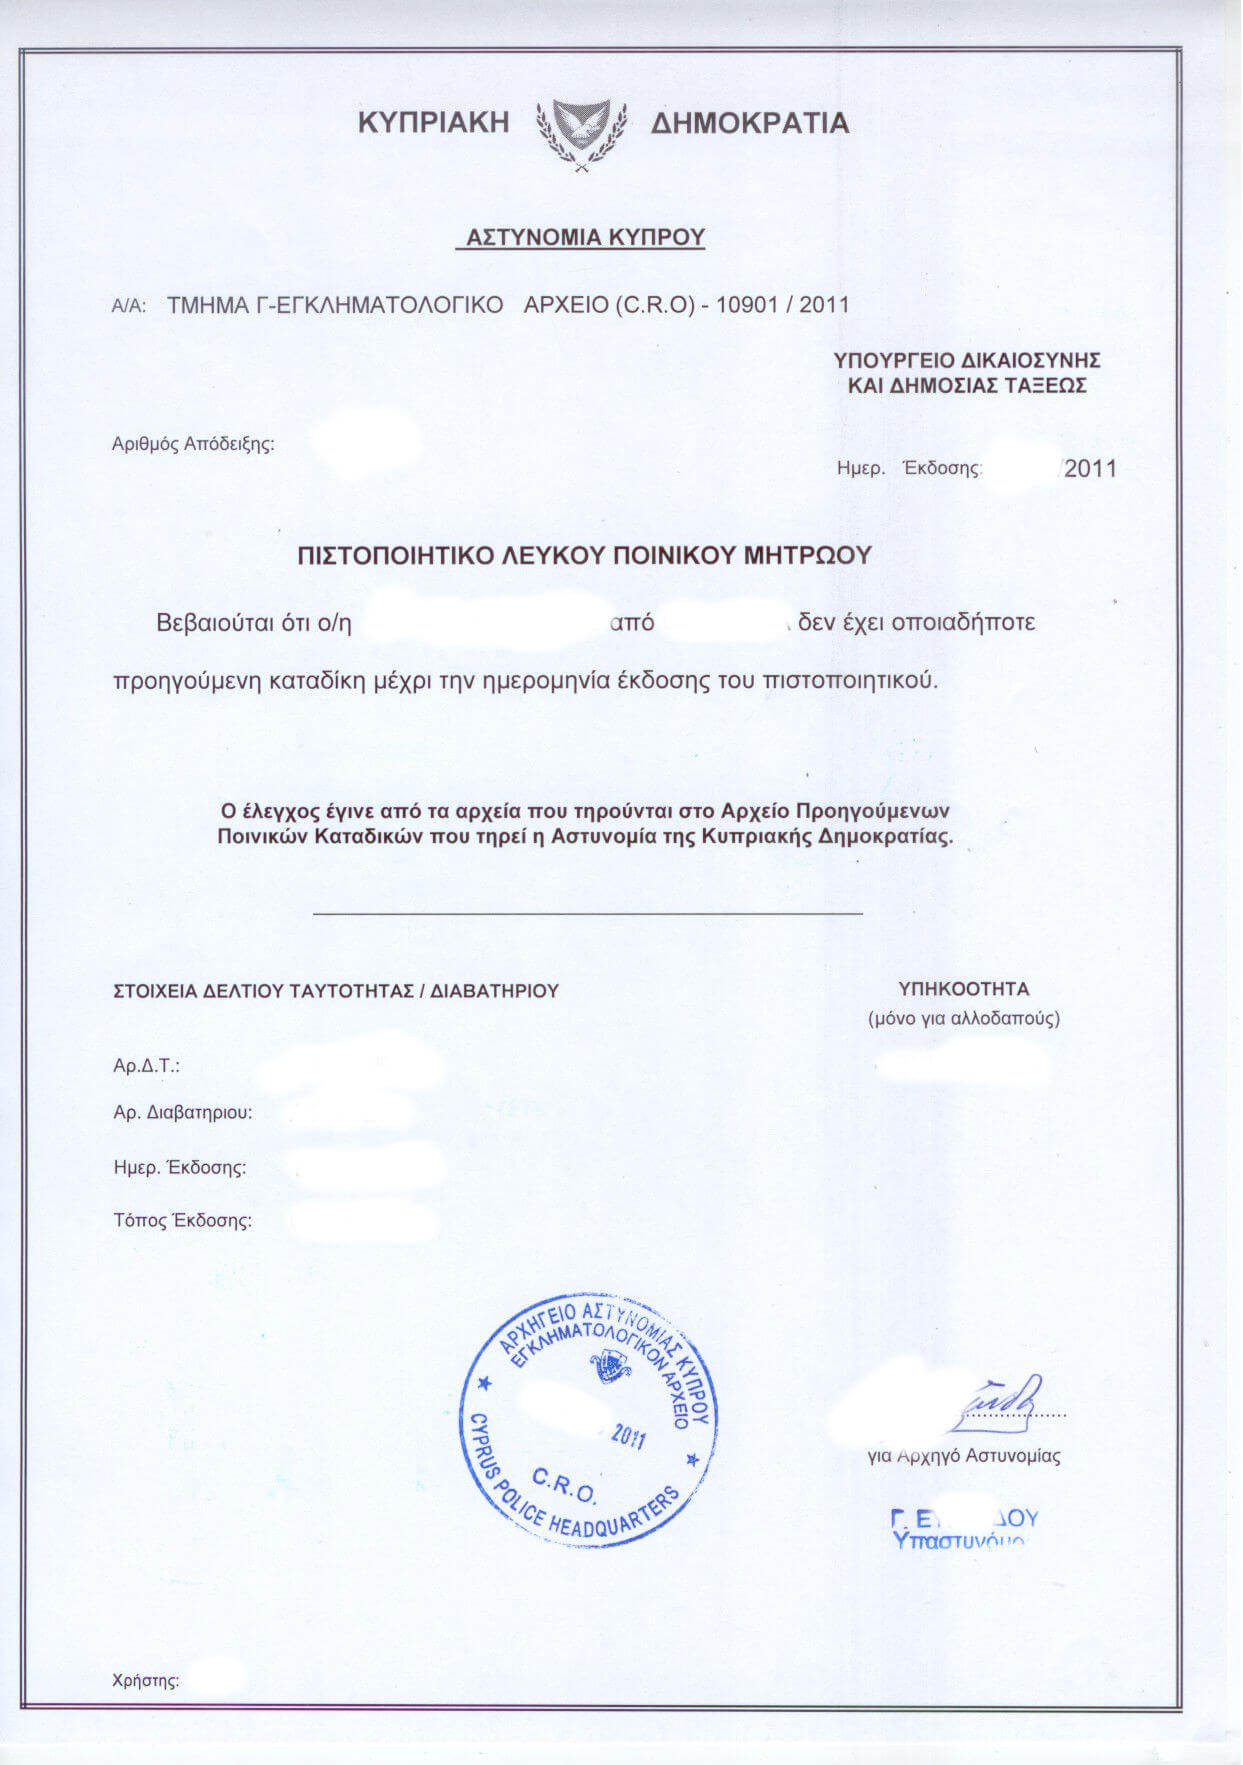 Criminal record certificate (or Police clearance